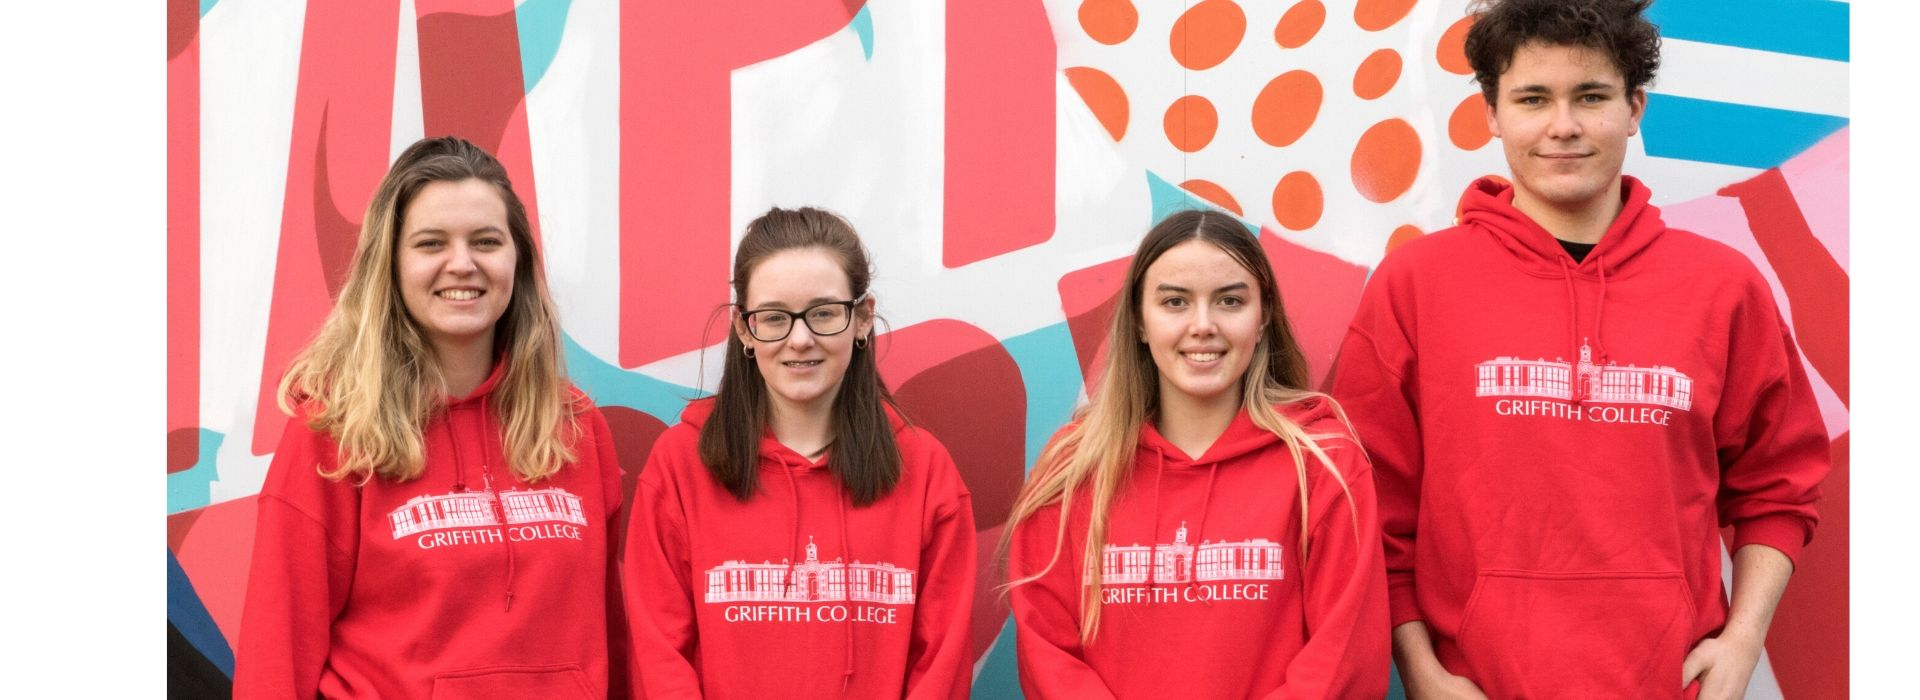 Scholarship students wearing Griffith College jumpers on the Dublin campus